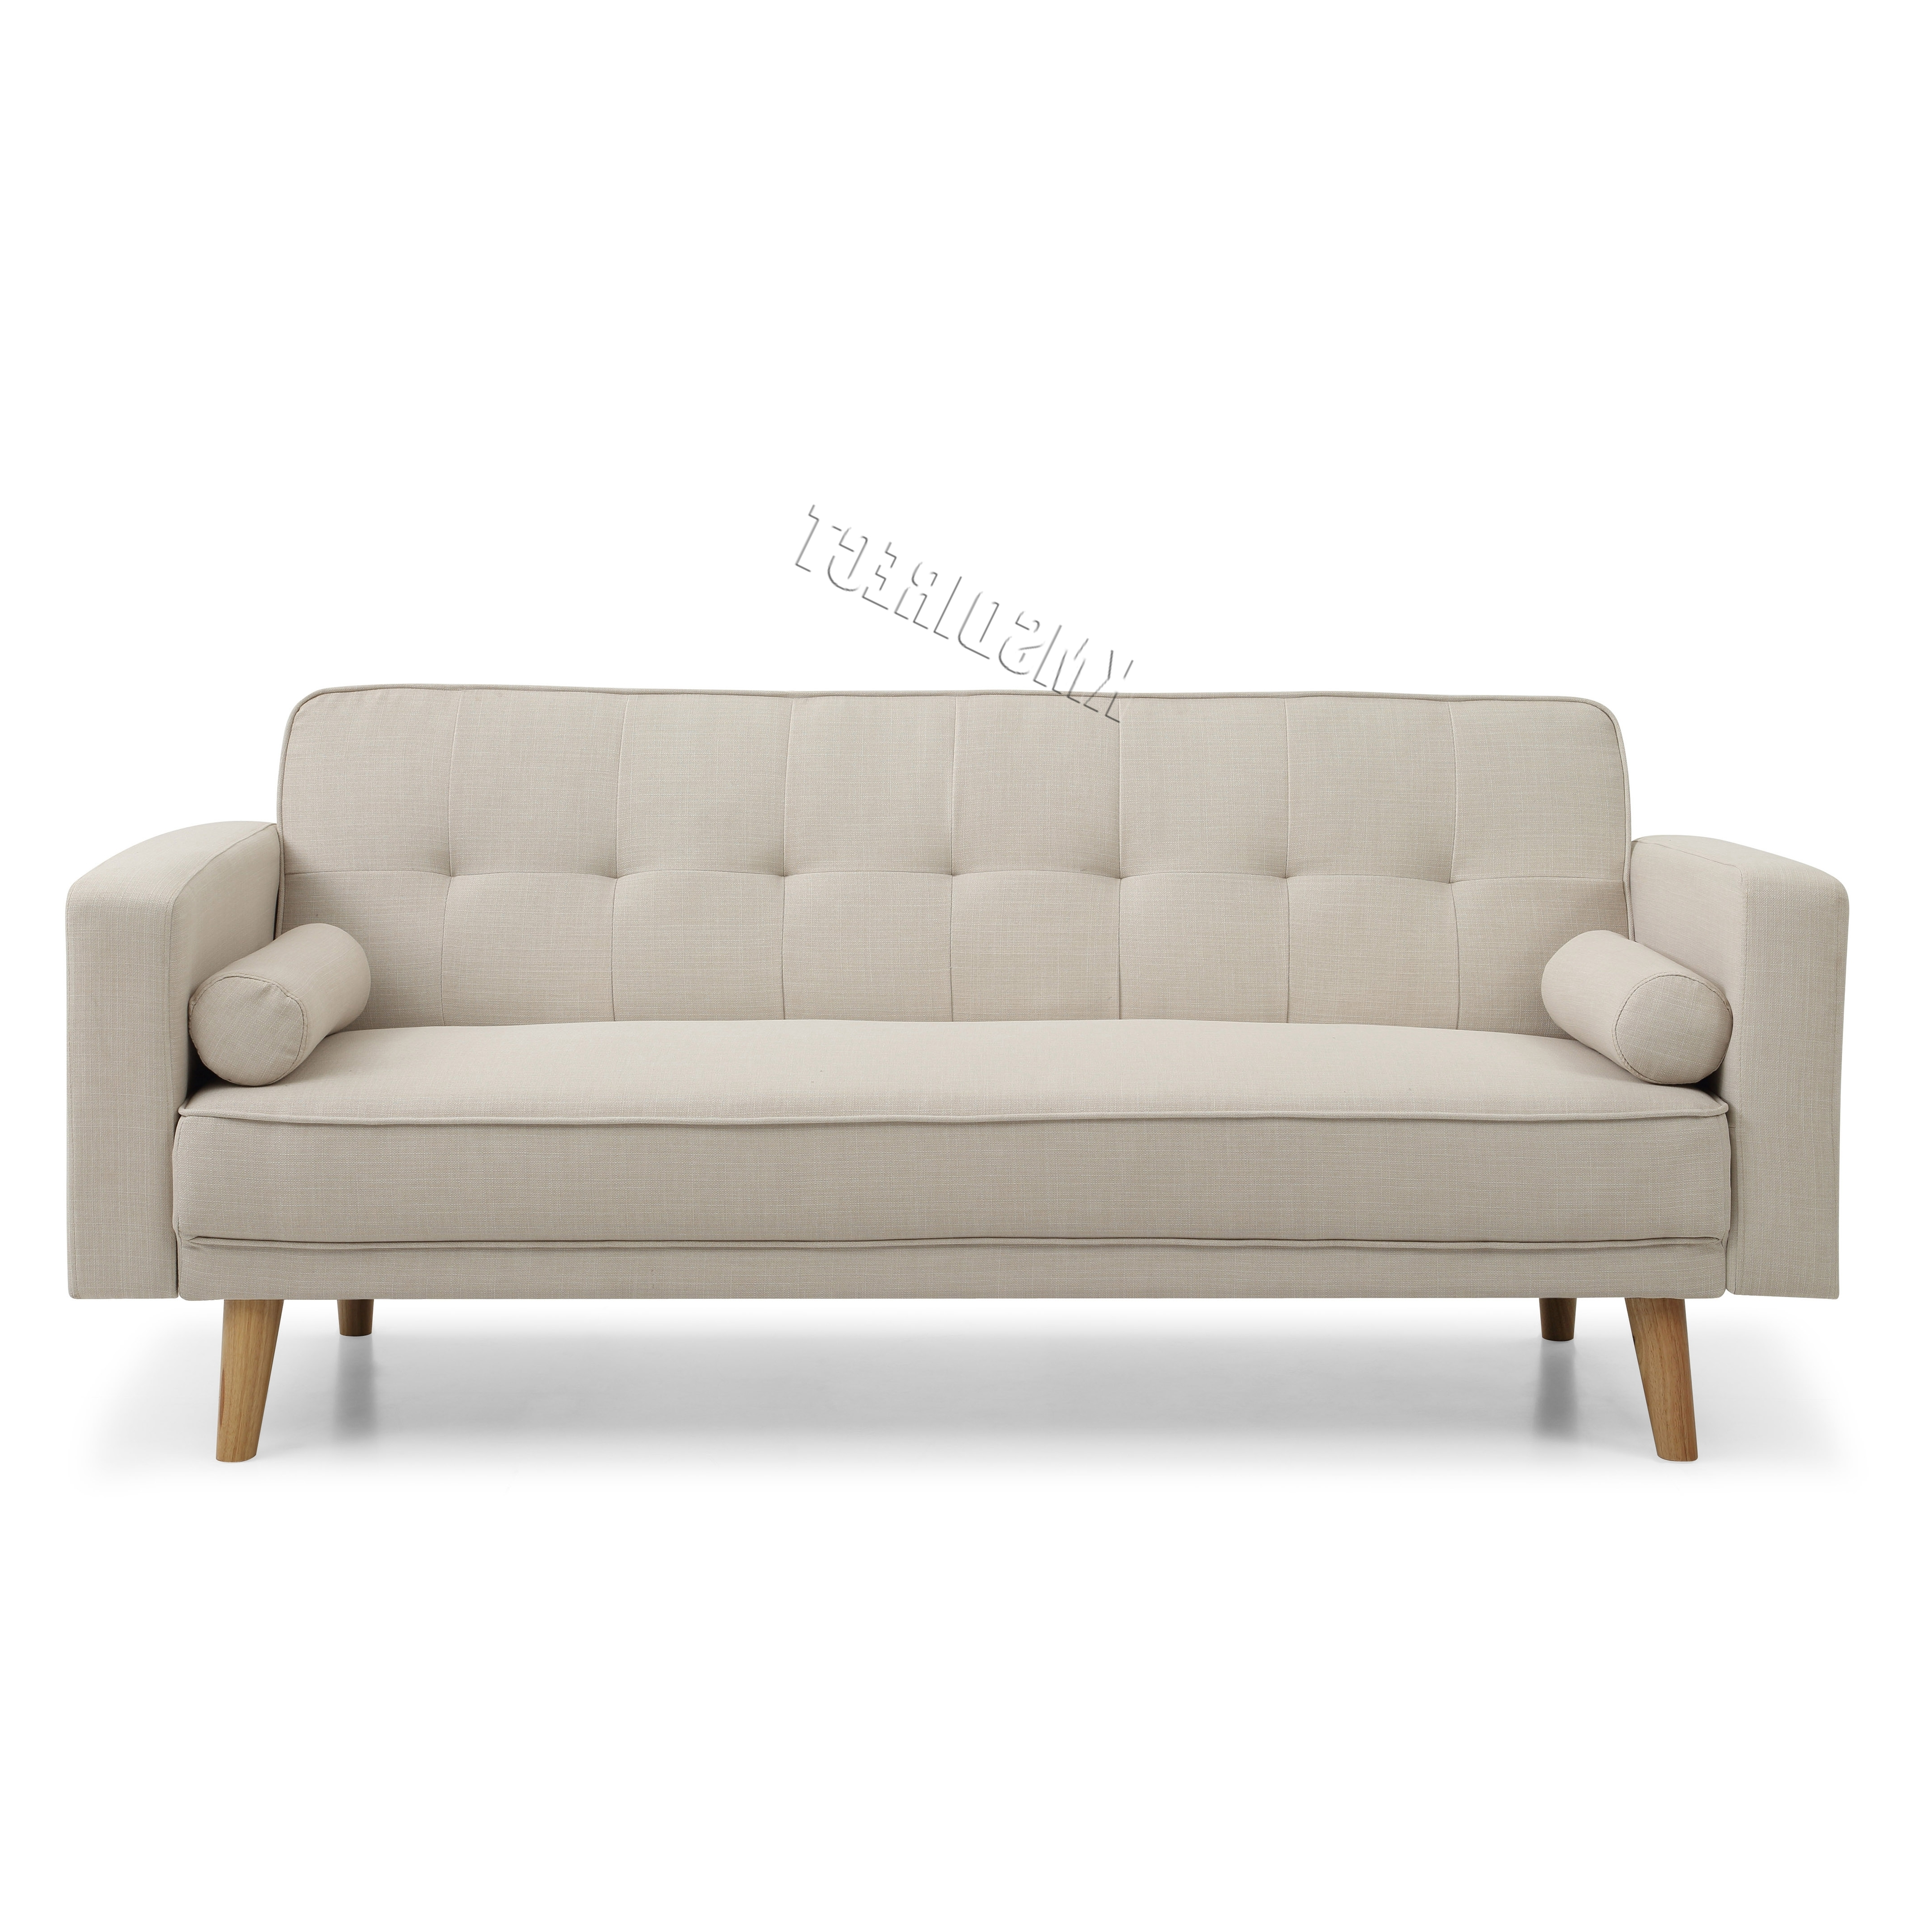 Most Current Modern 3 Seater Sofas Inside Westwood Fabric Sofa Bed 3 Seater Couch Luxury Modern Home (View 11 of 15)